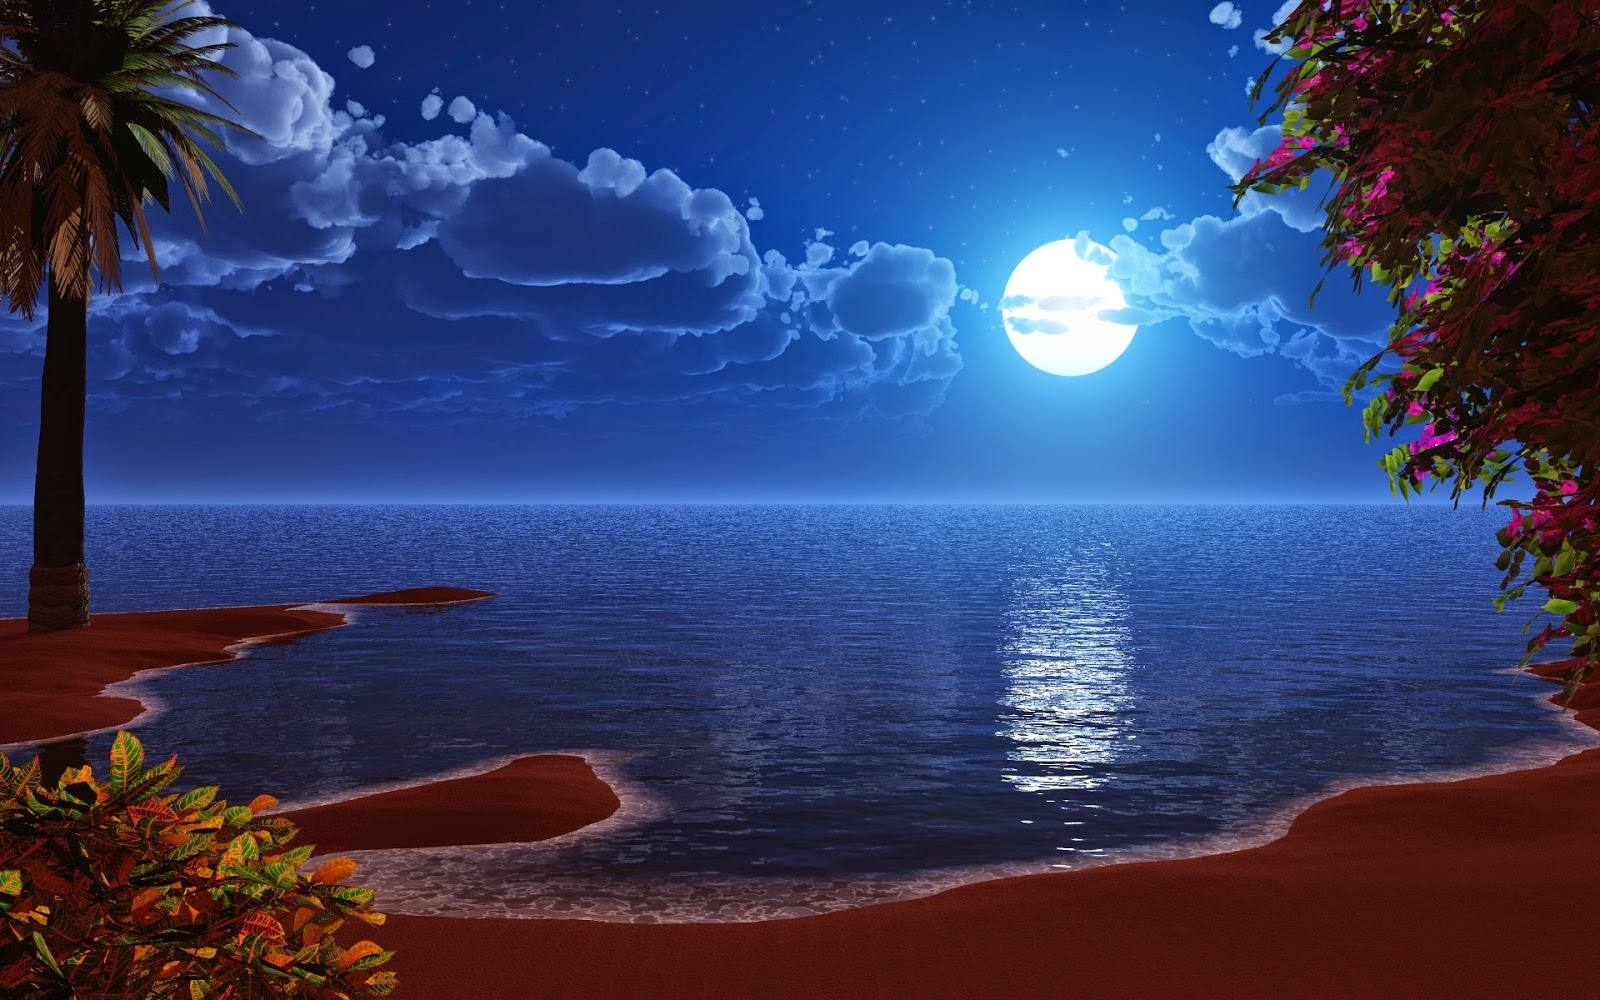 beauty-of-nature-at-night-in-full-moonlight.jpg